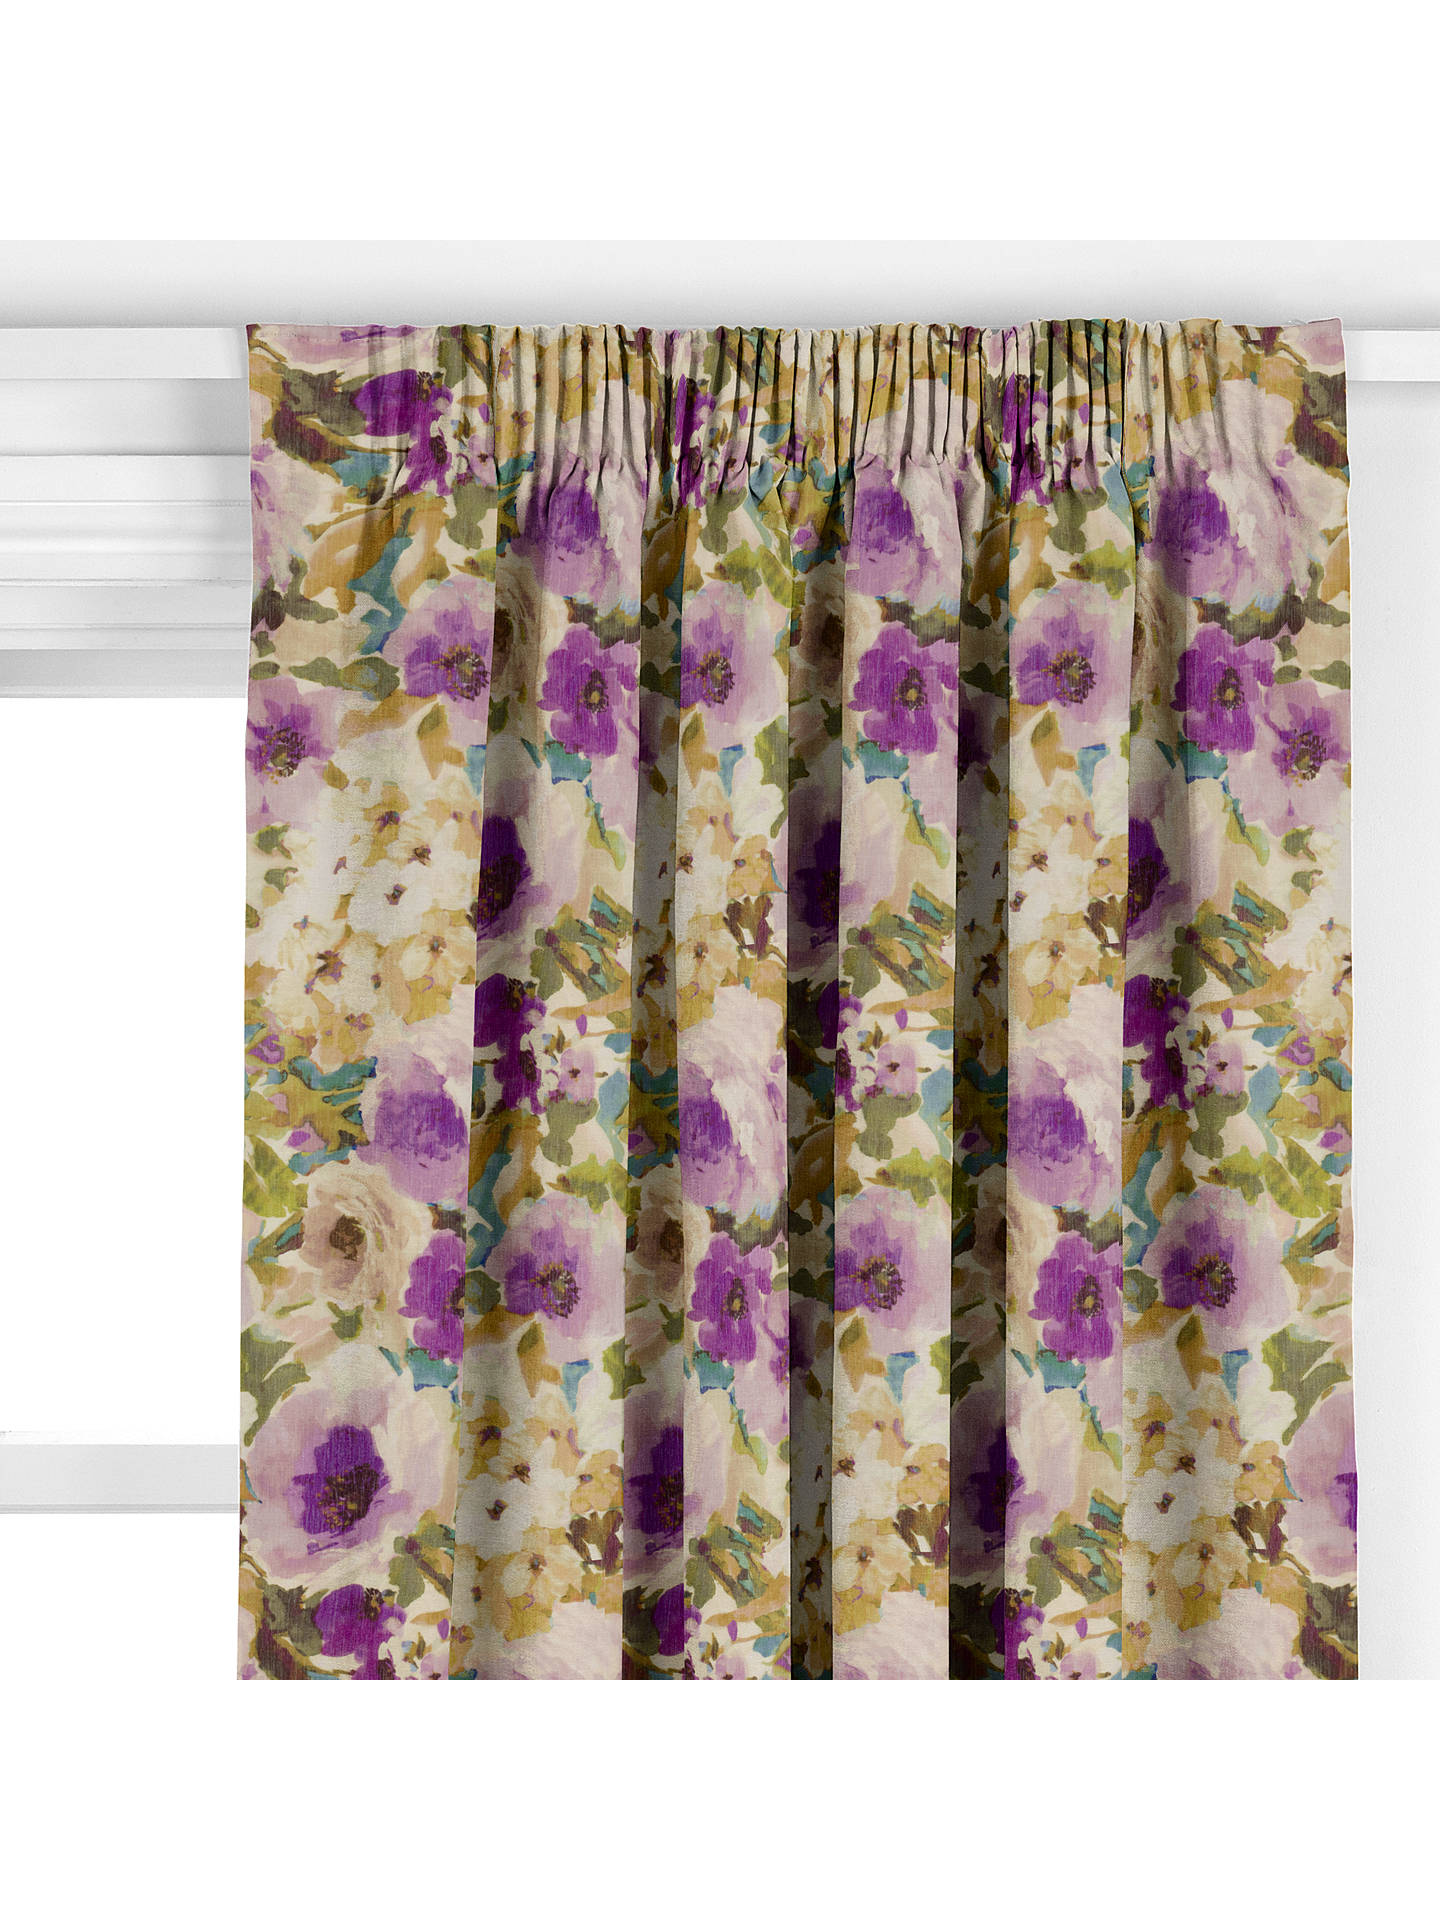 BuyJohn Lewis & Partners Helena Furnishing Fabric, Amethyst, Was £30.00 per metre, Now £9.00 per metre Online at johnlewis.com